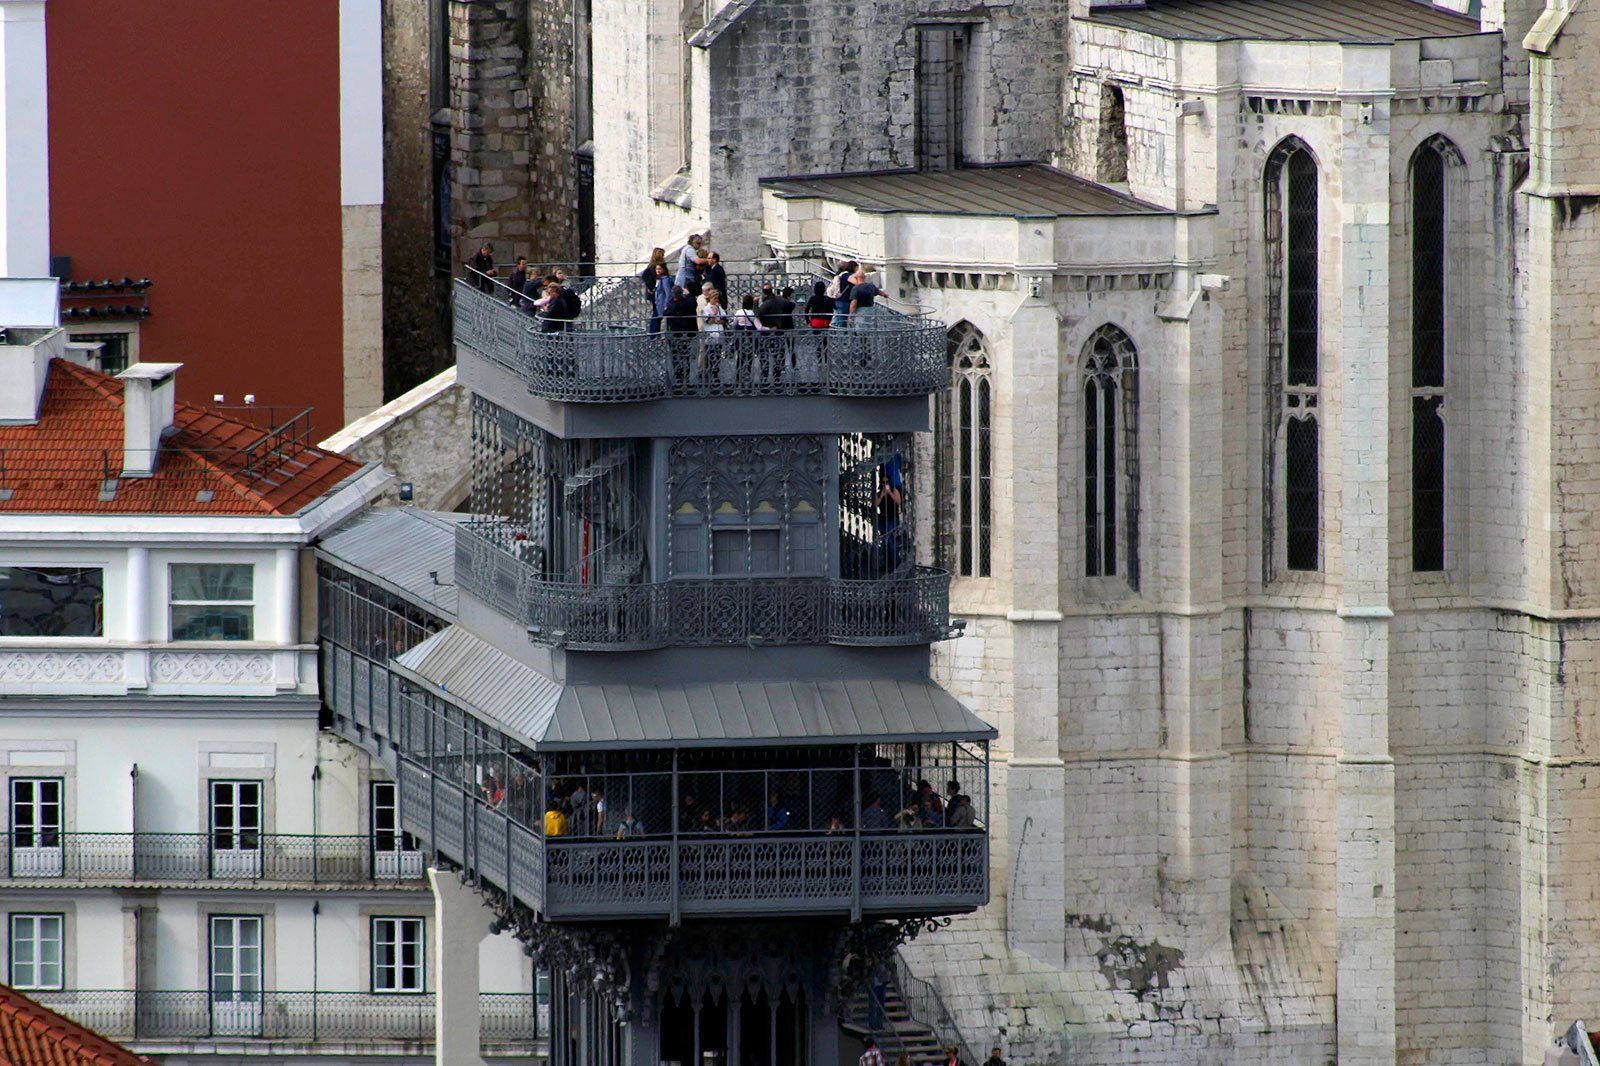 How to ride the Elevador di Santa Justa in Lisbon